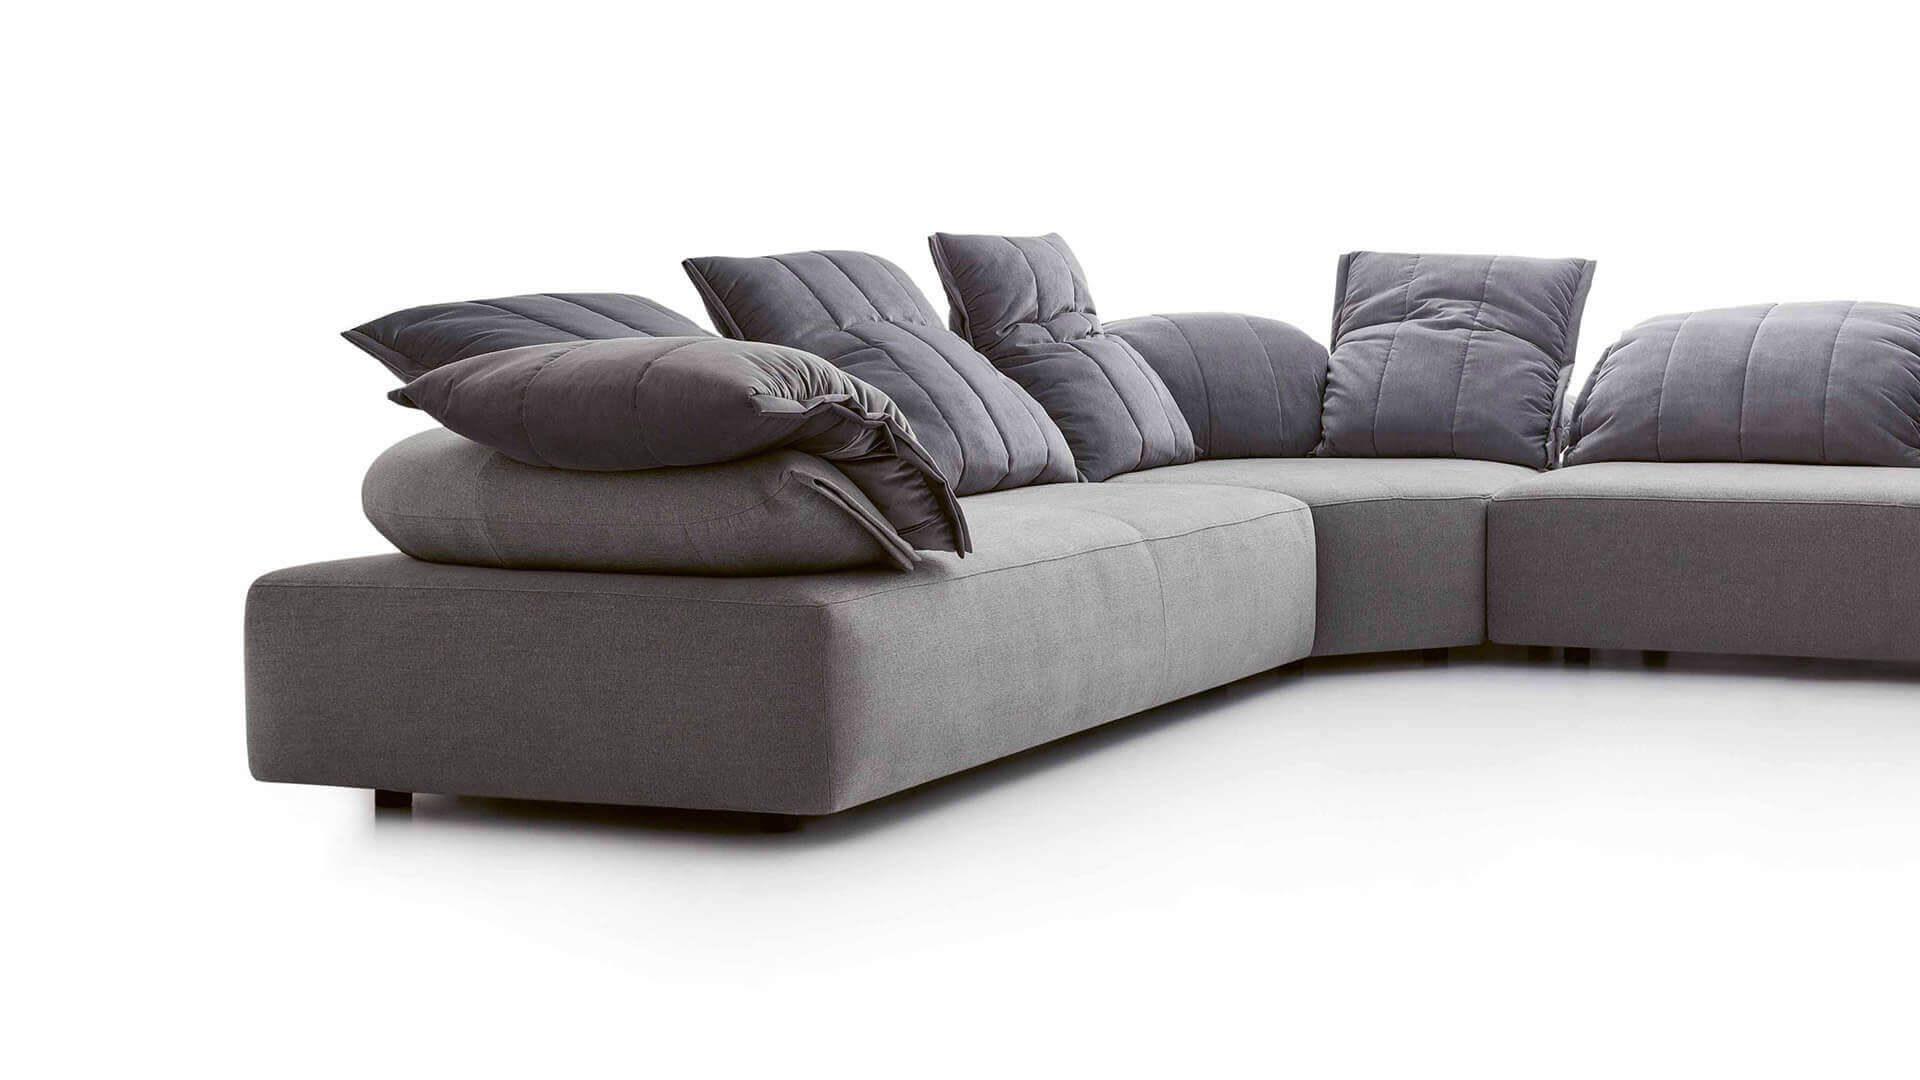 Italian Leather Sofas, Beds and Armchair - Ditre Italia